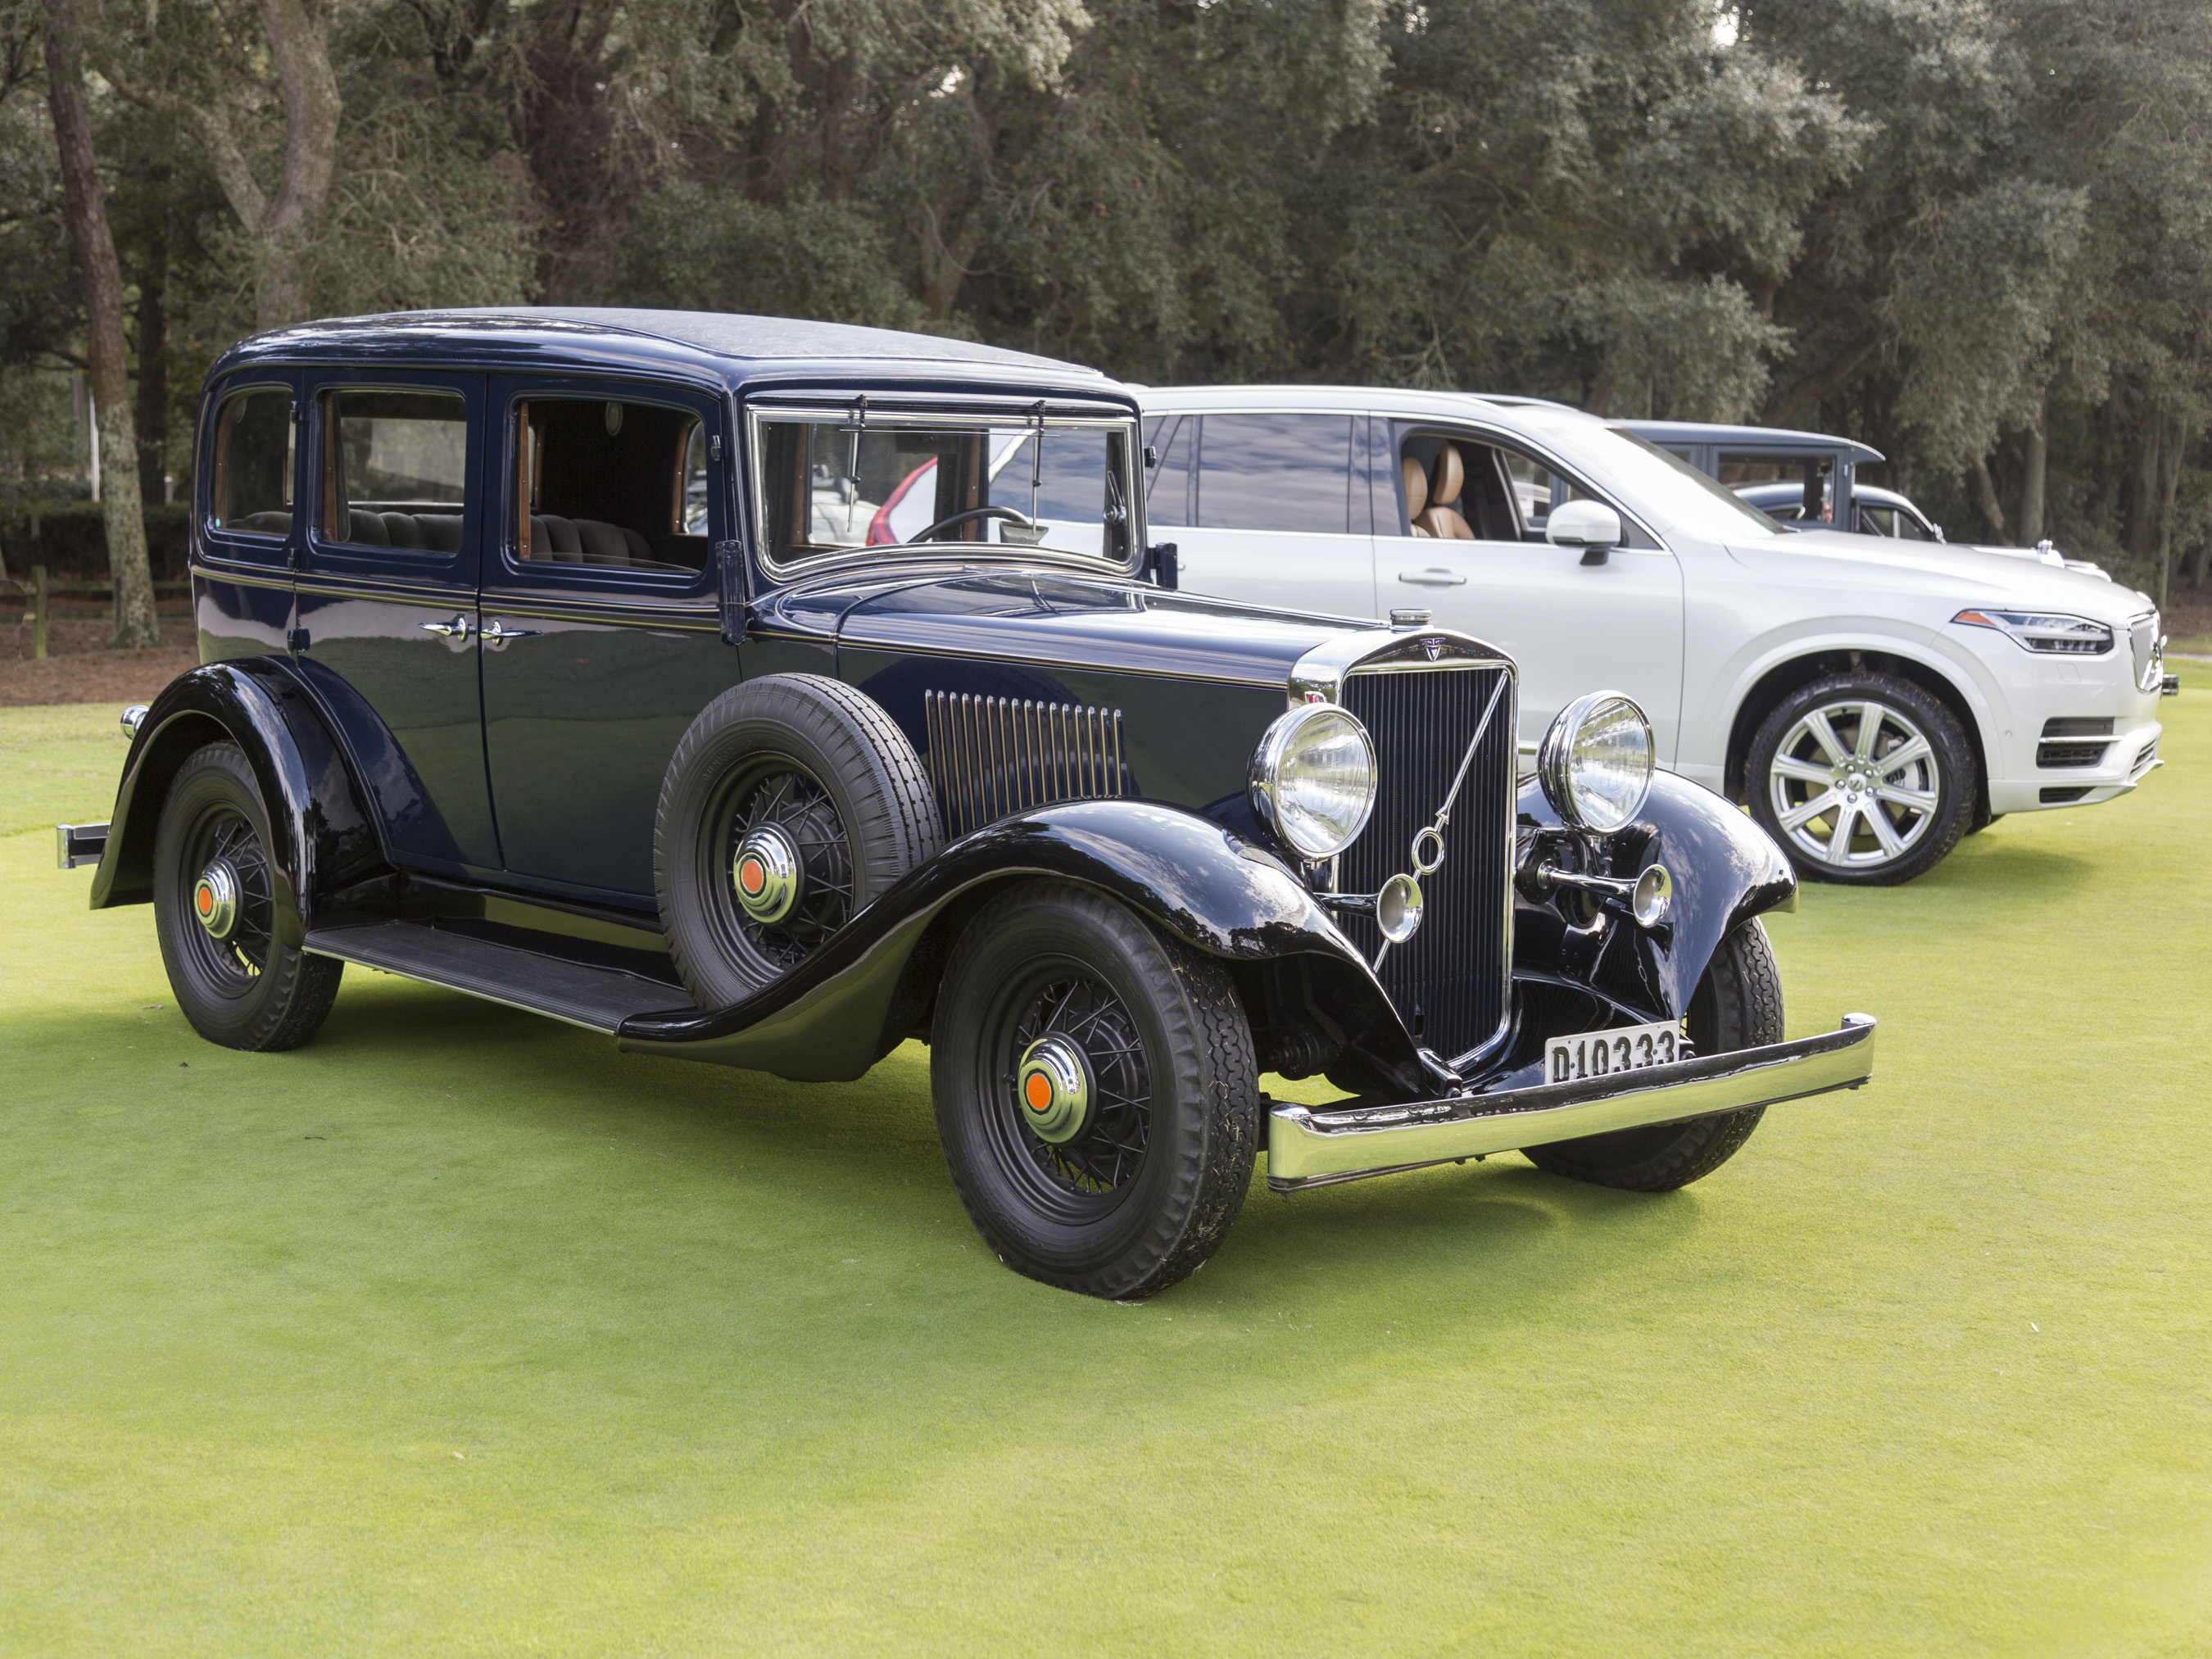 Volvo brought this 1933 Volvo PV654, the company's first luxury car.